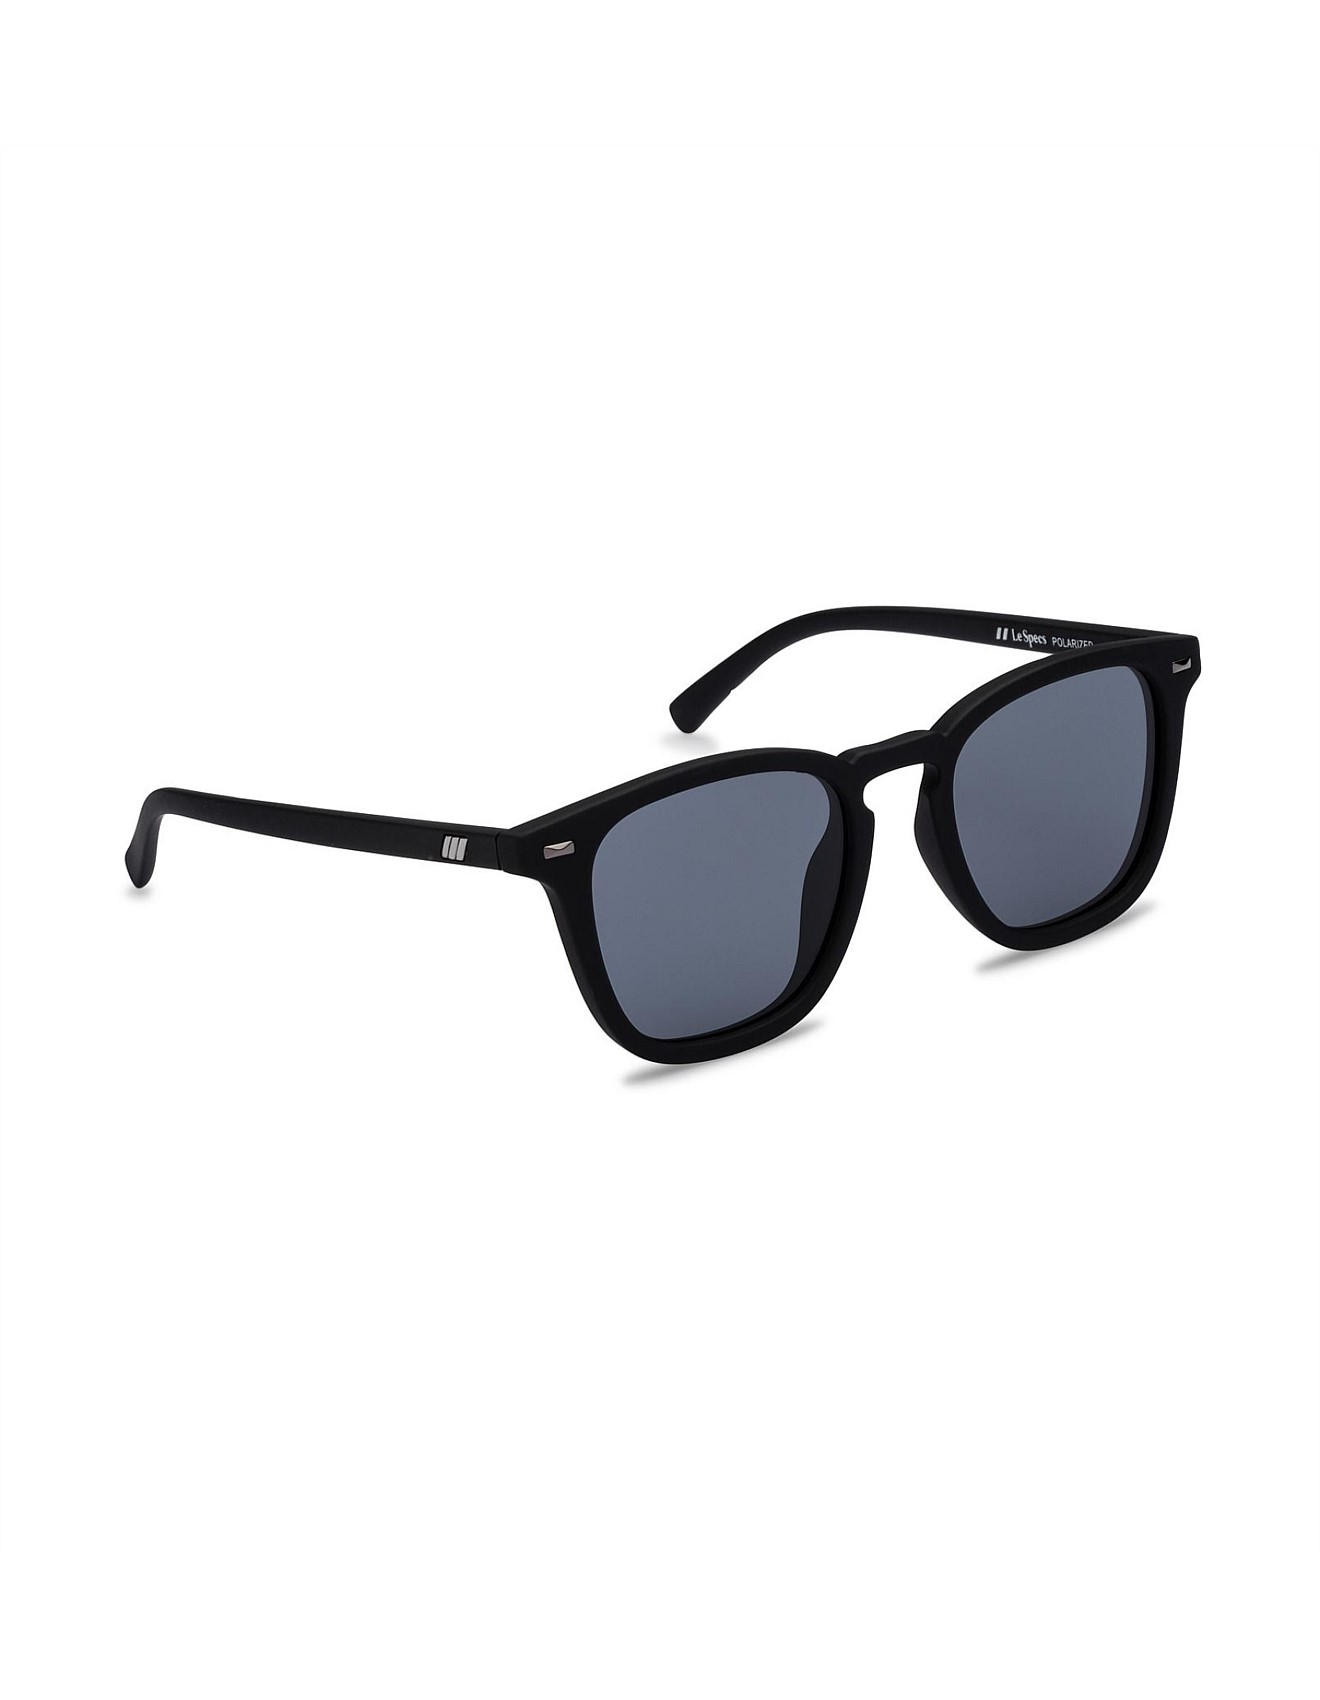 01ae0f9af6 No Biggie Sunglasses Special Offer. 1. Zoom. Le Specs